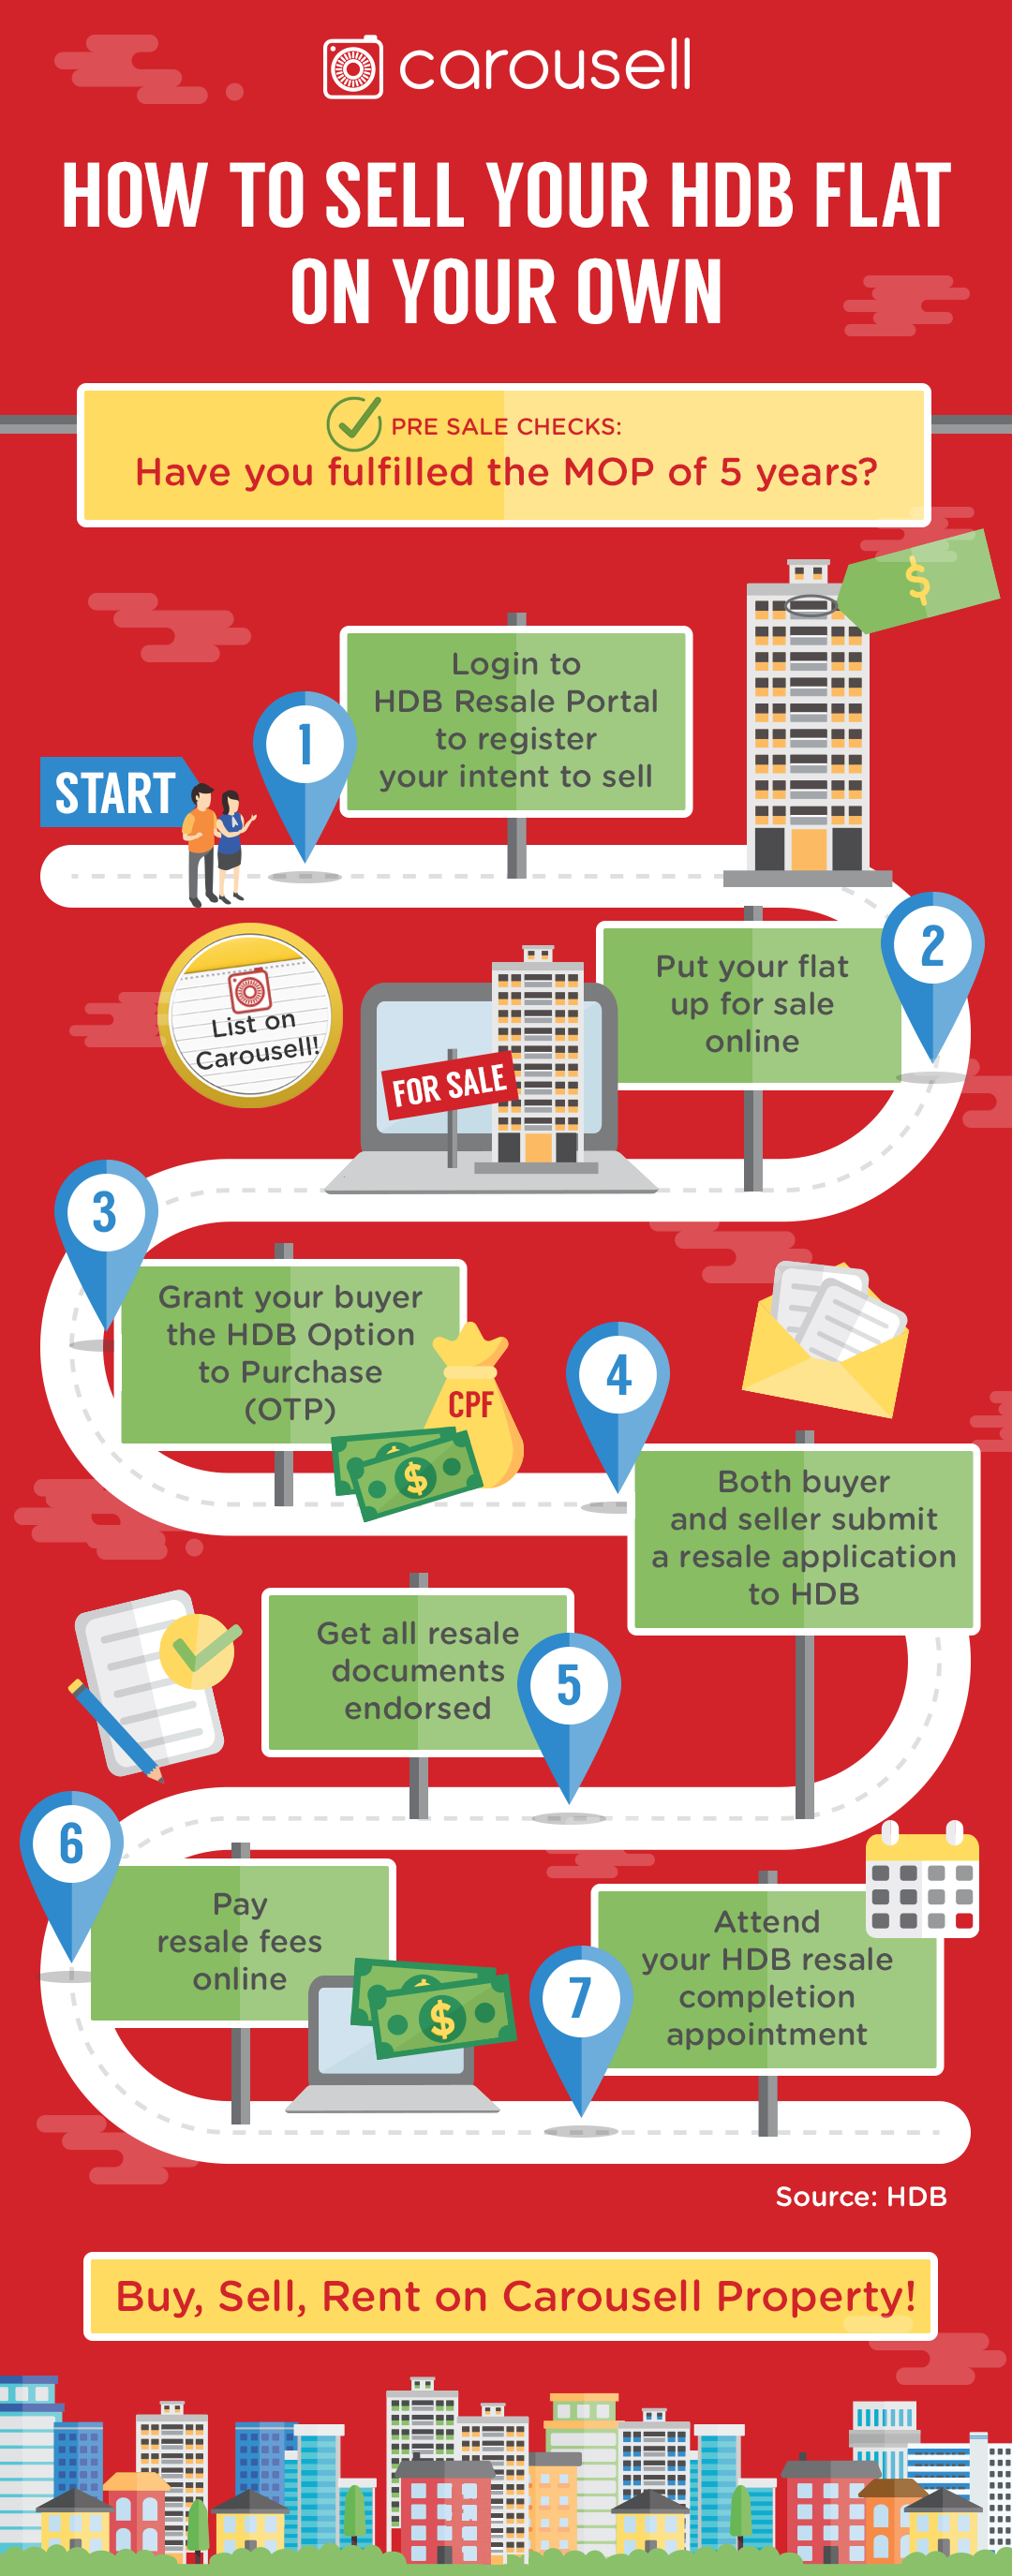 Selling your HDB flat as a direct owner